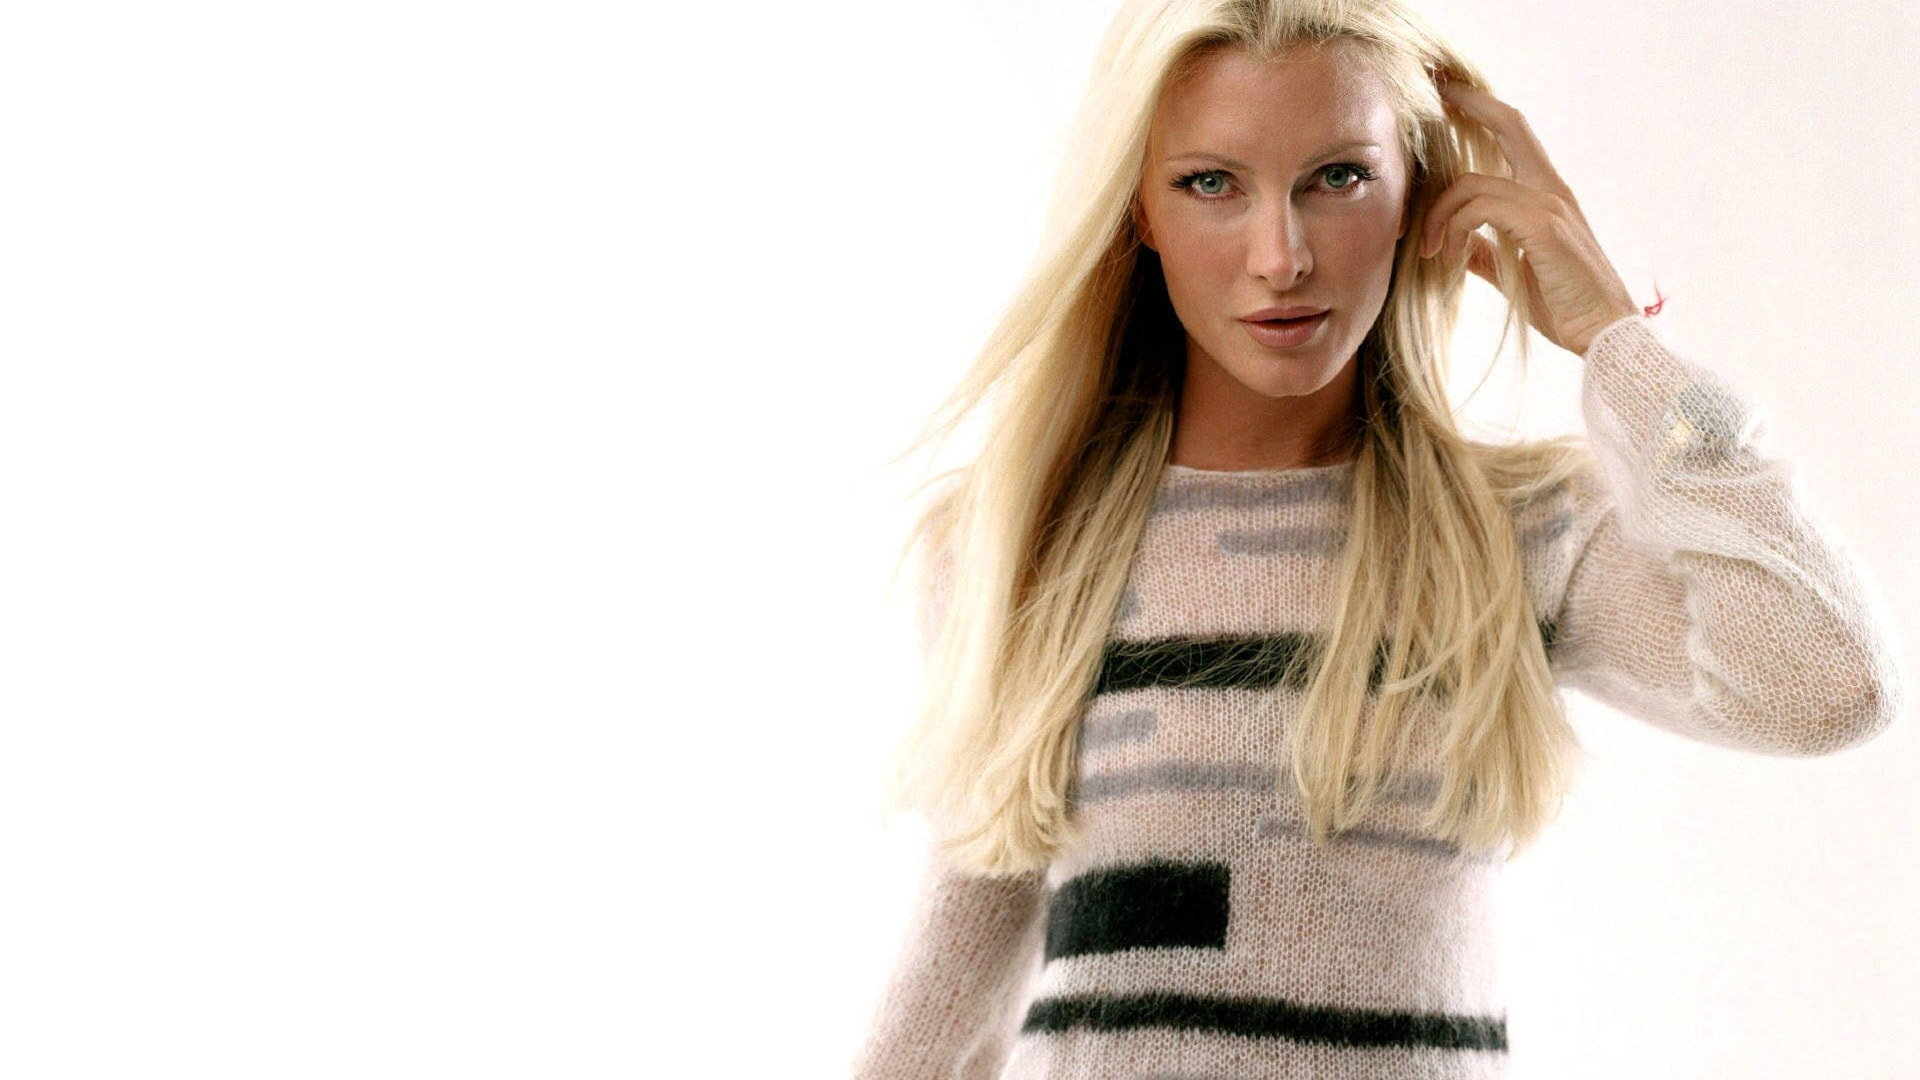 Caprice Bourret Wallpapers hd